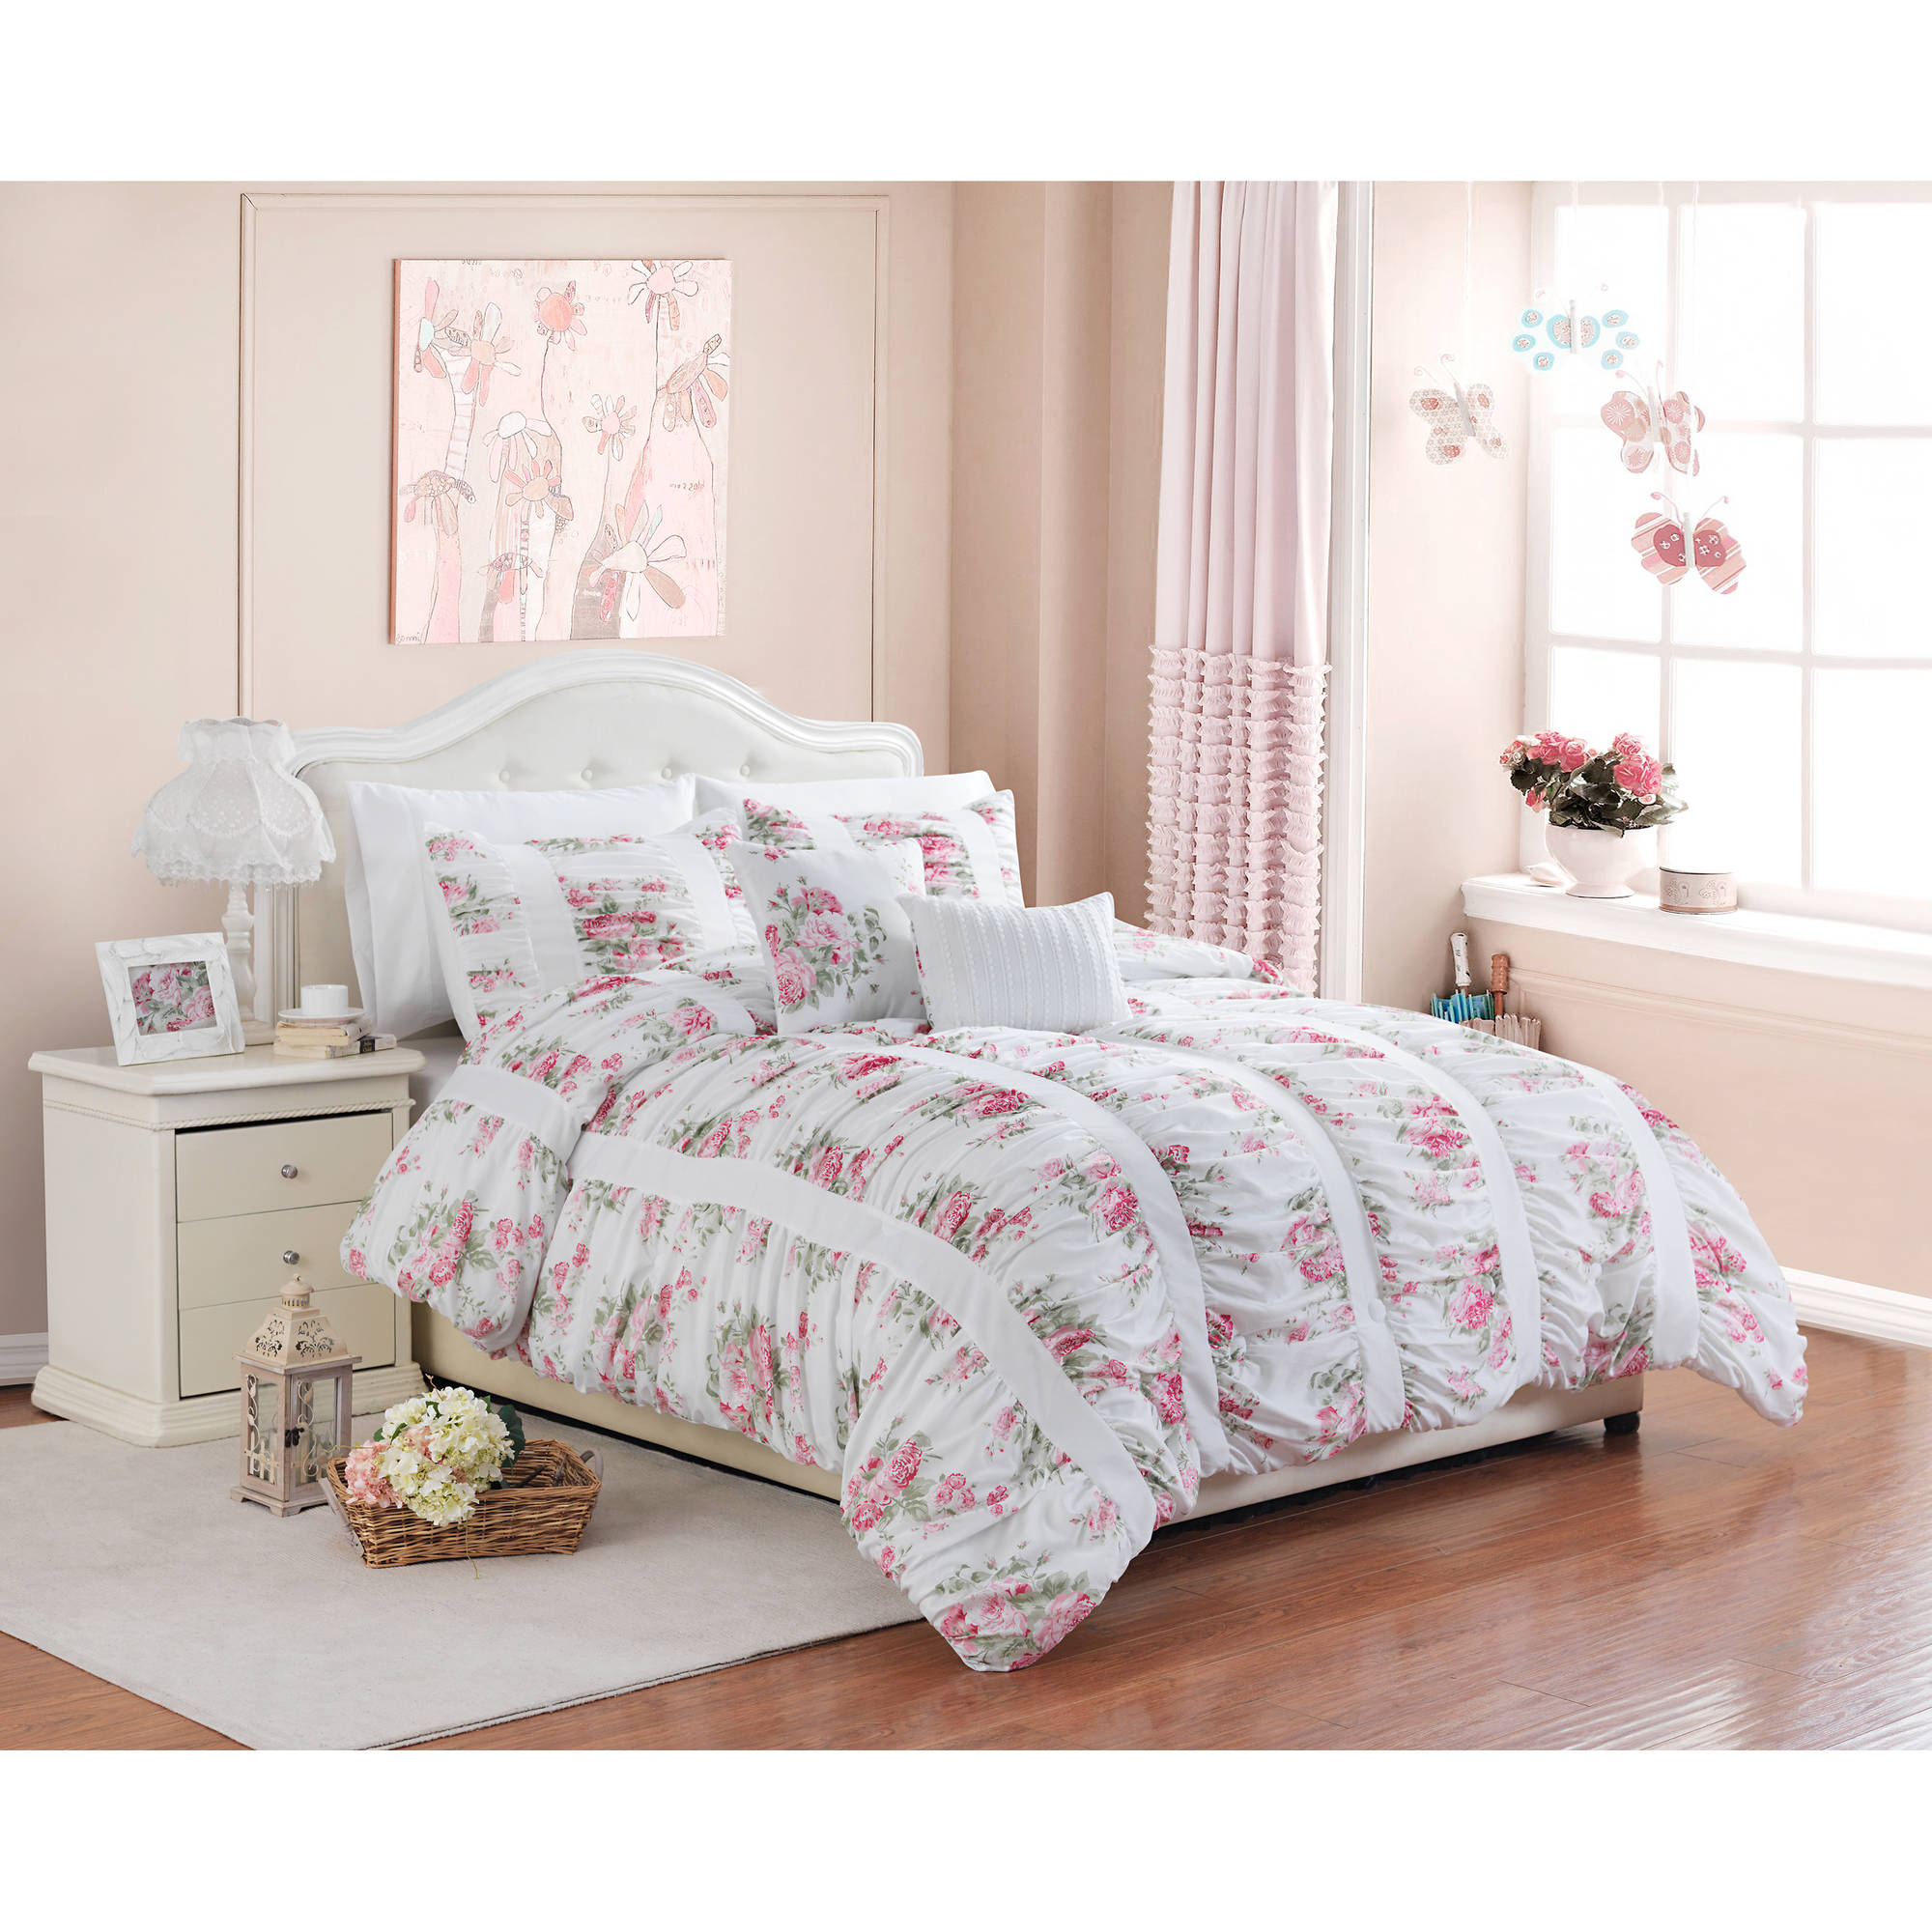 Better Homes and Gardens 5-Piece Floral Ruching Bedding Comforter ...